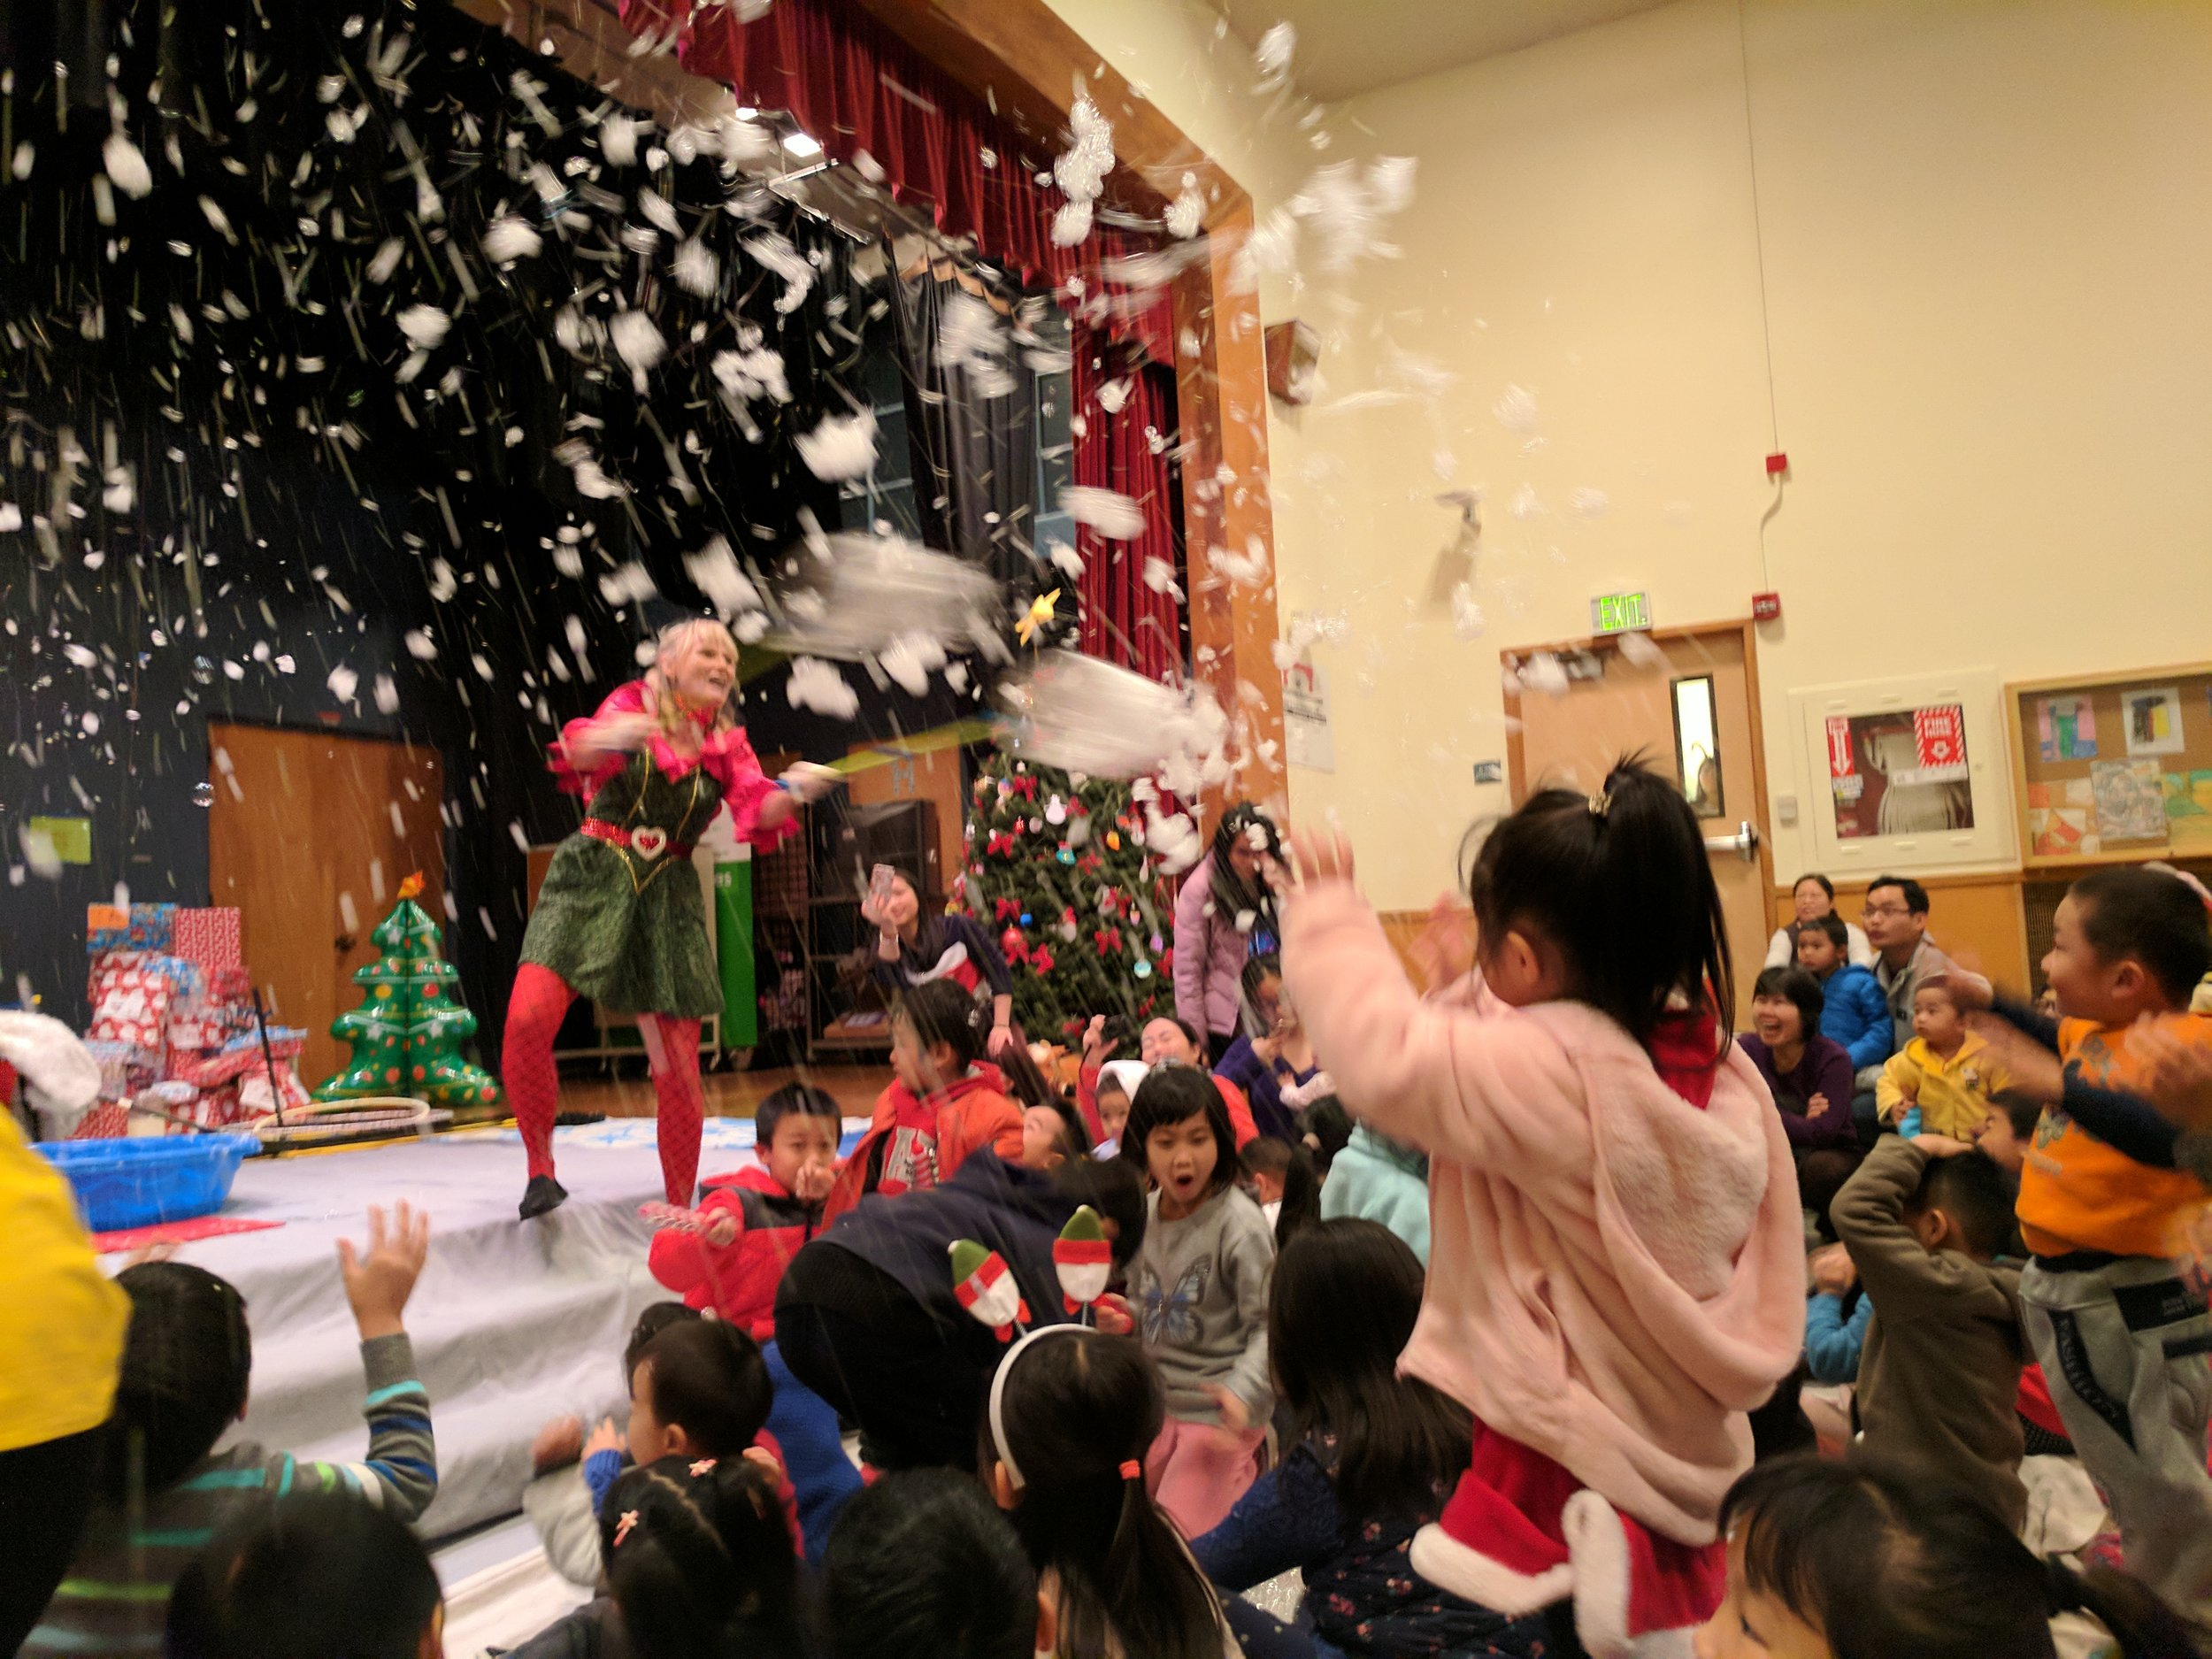 The Bubble Lady delights children with her interactive show.